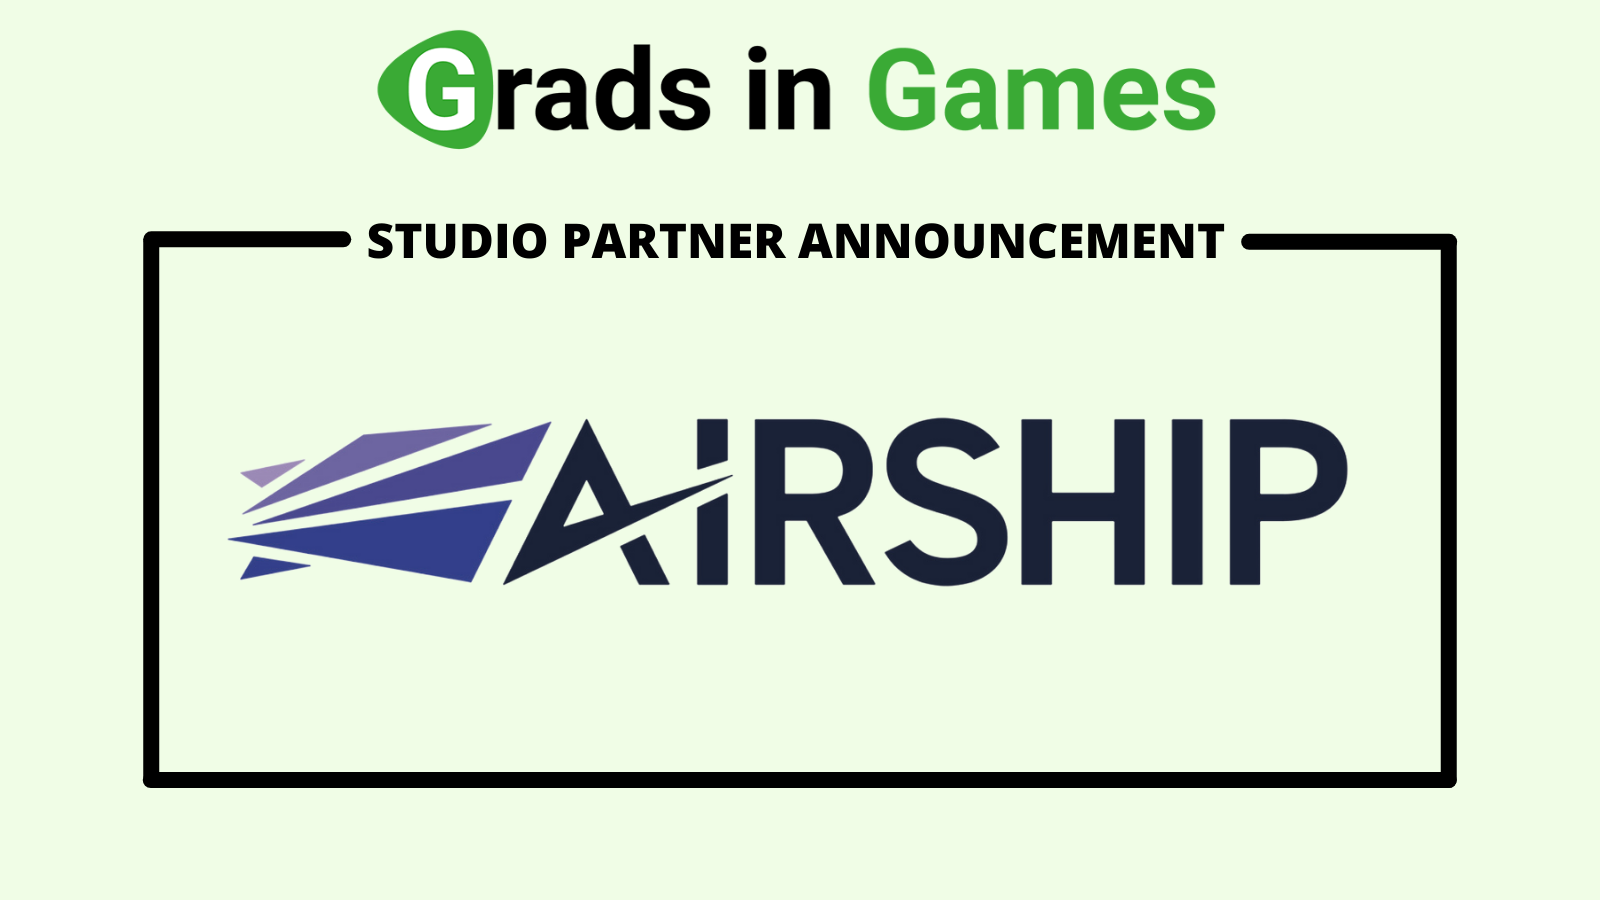 Grads In Games welcomes back Airship Images as studio partner for 2021/22